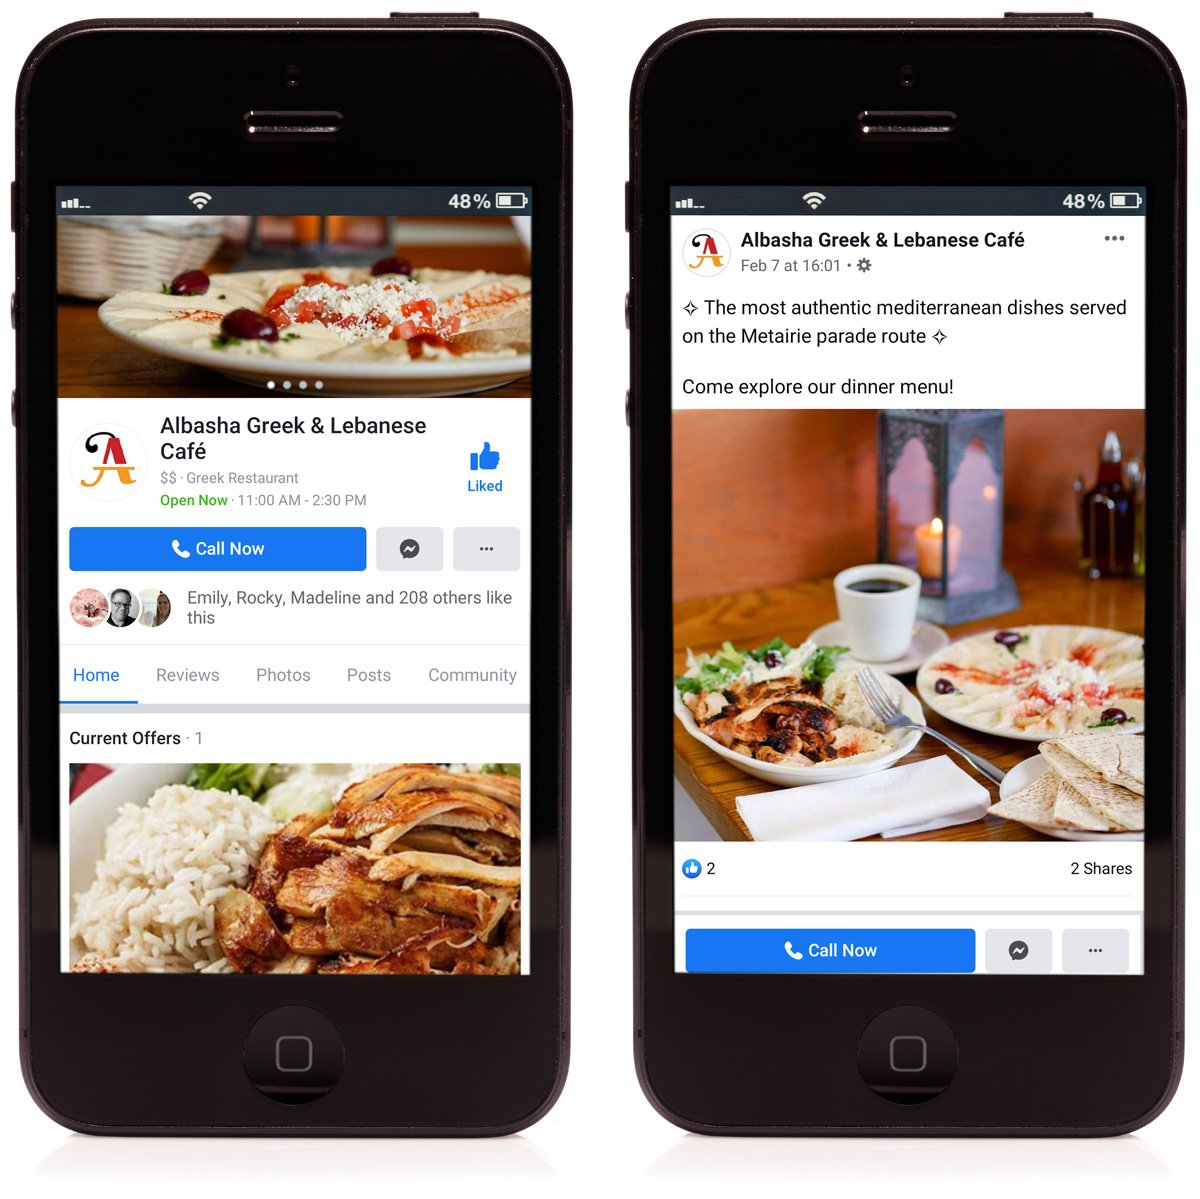 Social media management for Albasha Greek and Lebanese Cafe, maintained by Cerberus Agency in New Orleans, LA.